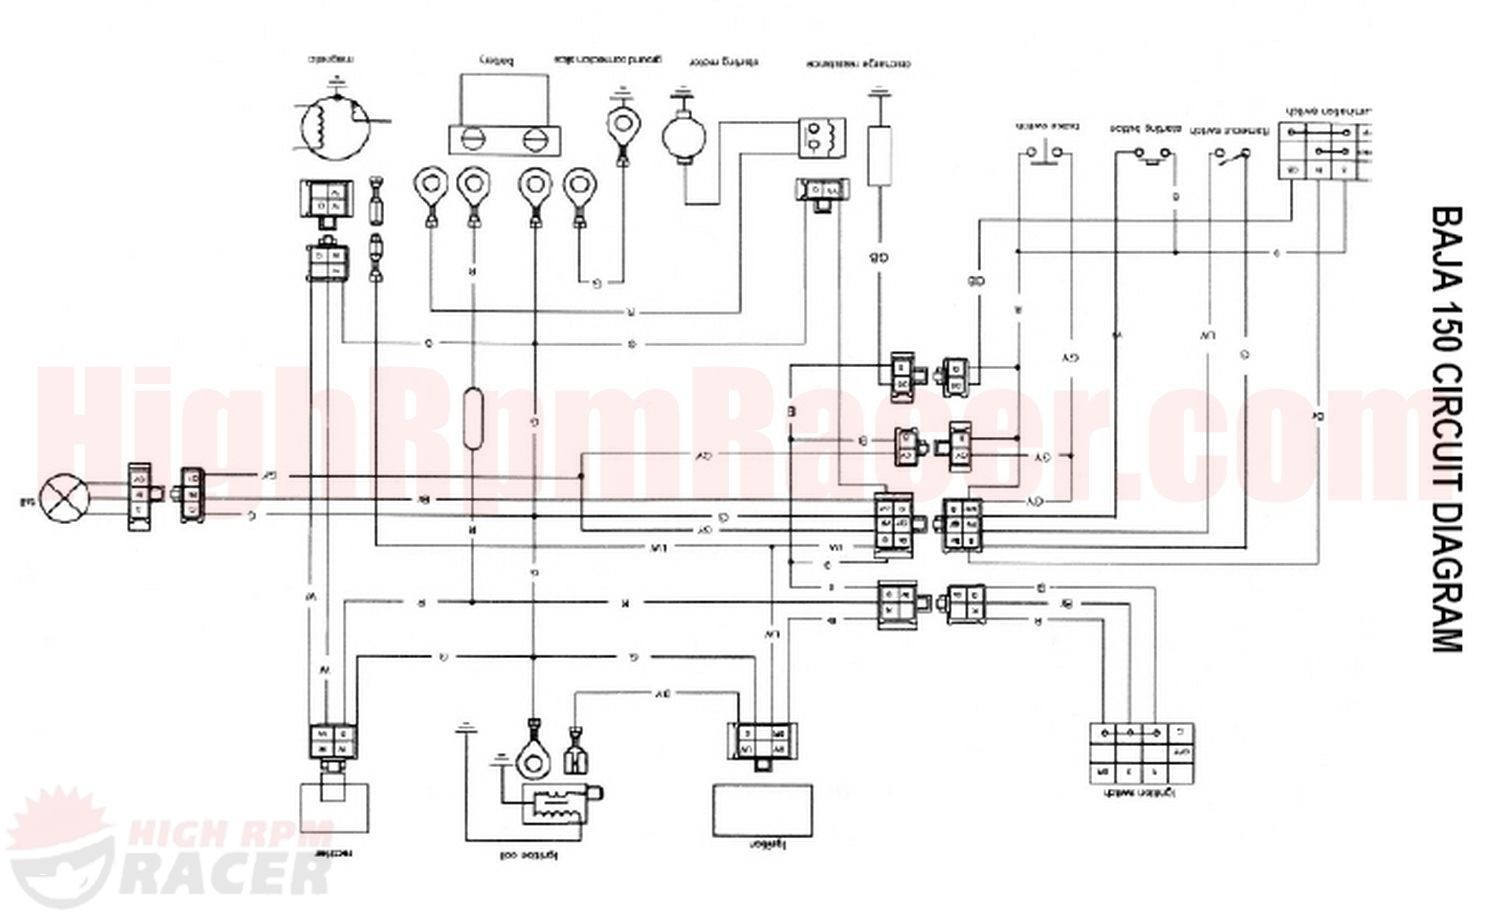 110cc Chinese atv Wiring Diagram Inspirational Outstanding Wiring Chinese atv Wiring Diagram Model 110 atv